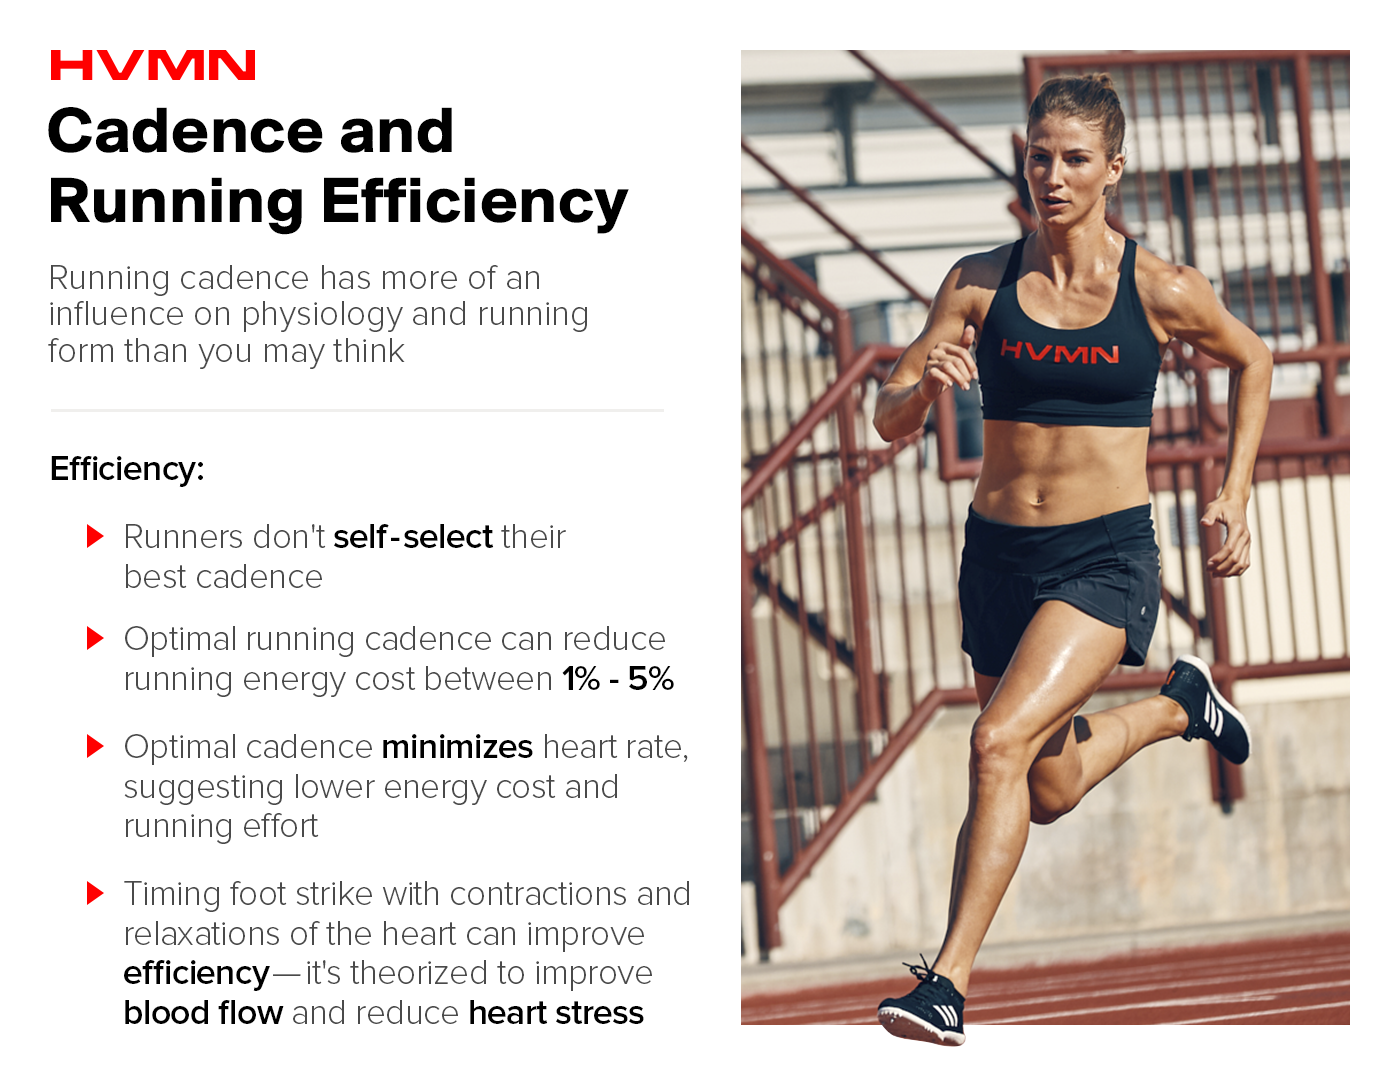 A female runner on the track sprinting, showing how running cadence can affect running economy